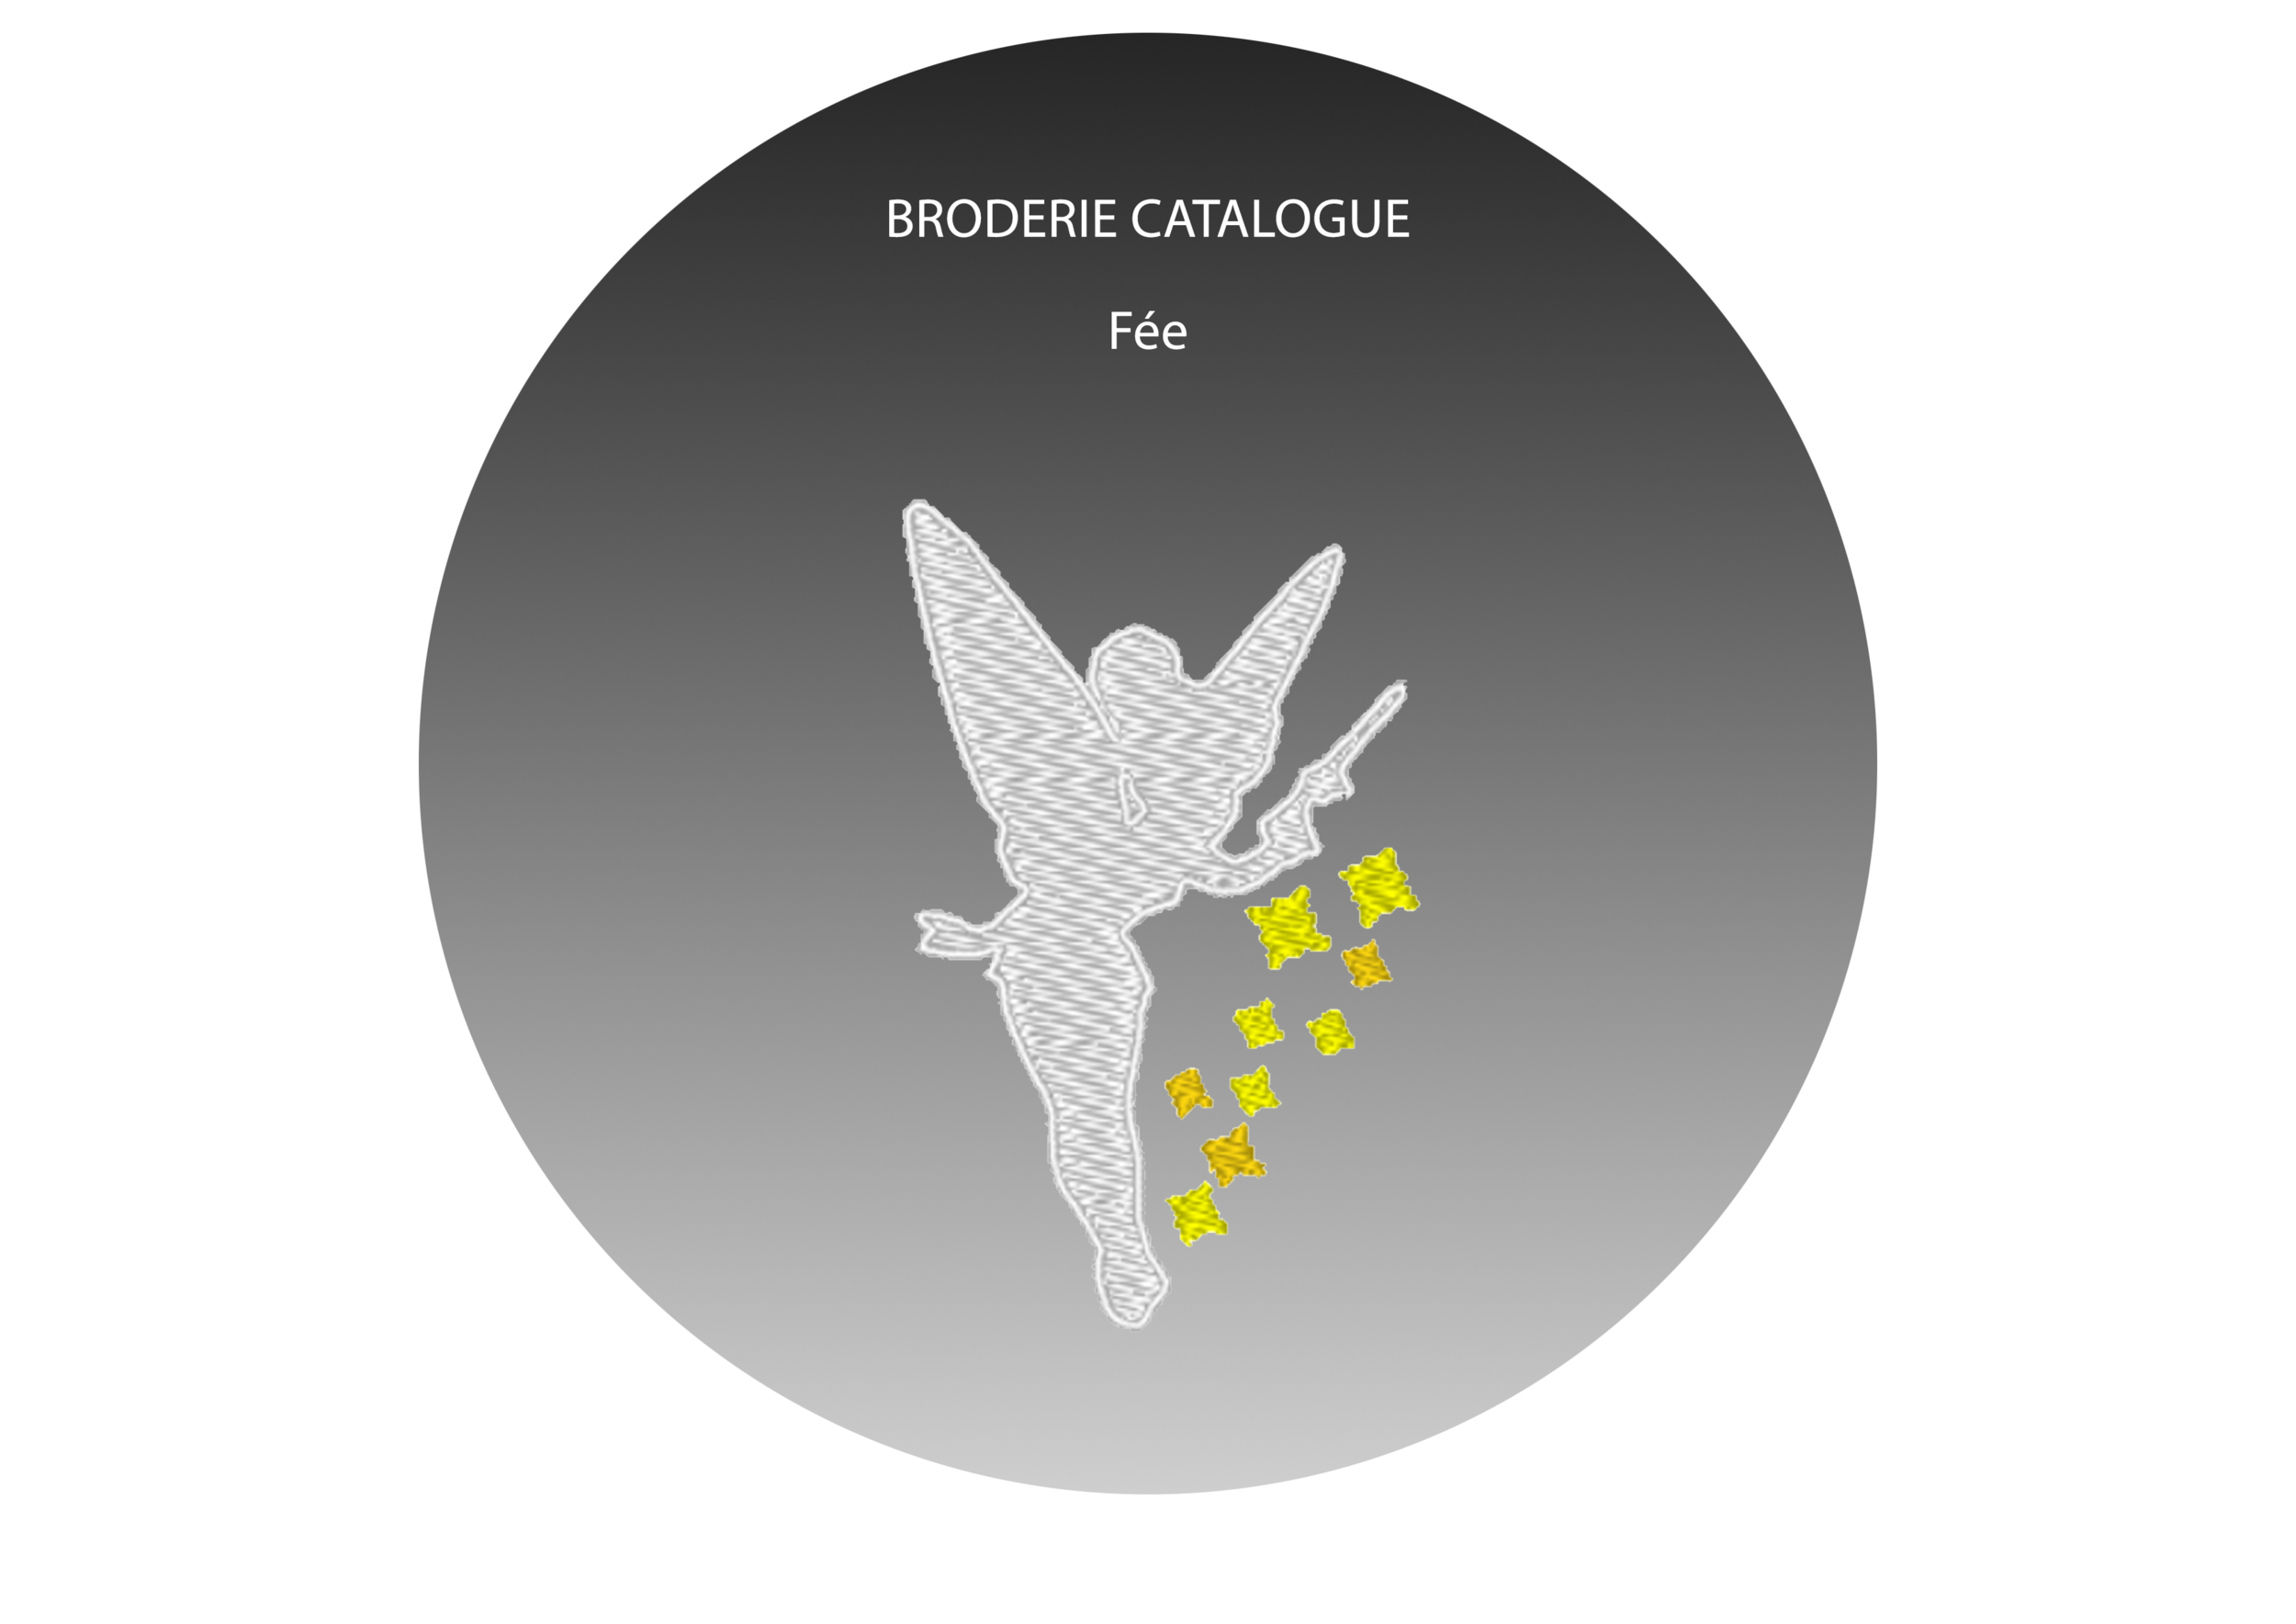 Broderie-catalogue_fee